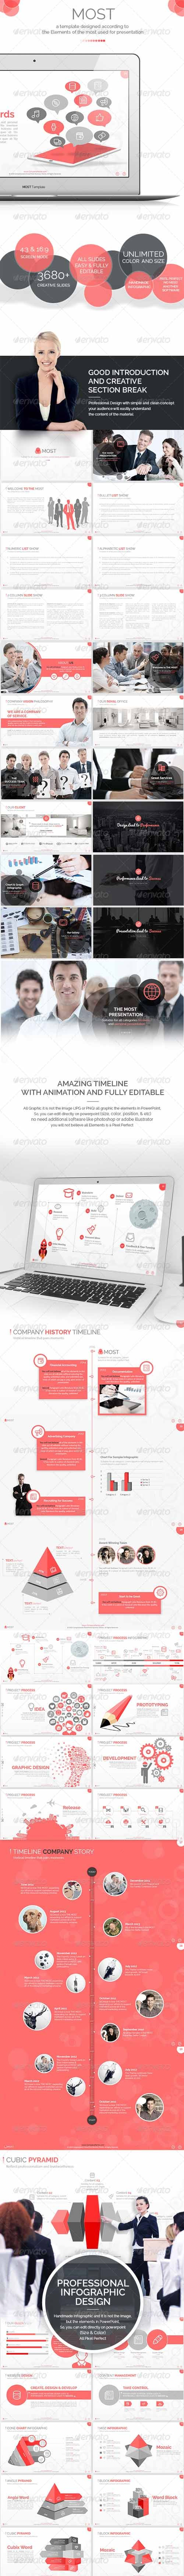 GR - Most - The Most PowerPoint Template 8197738